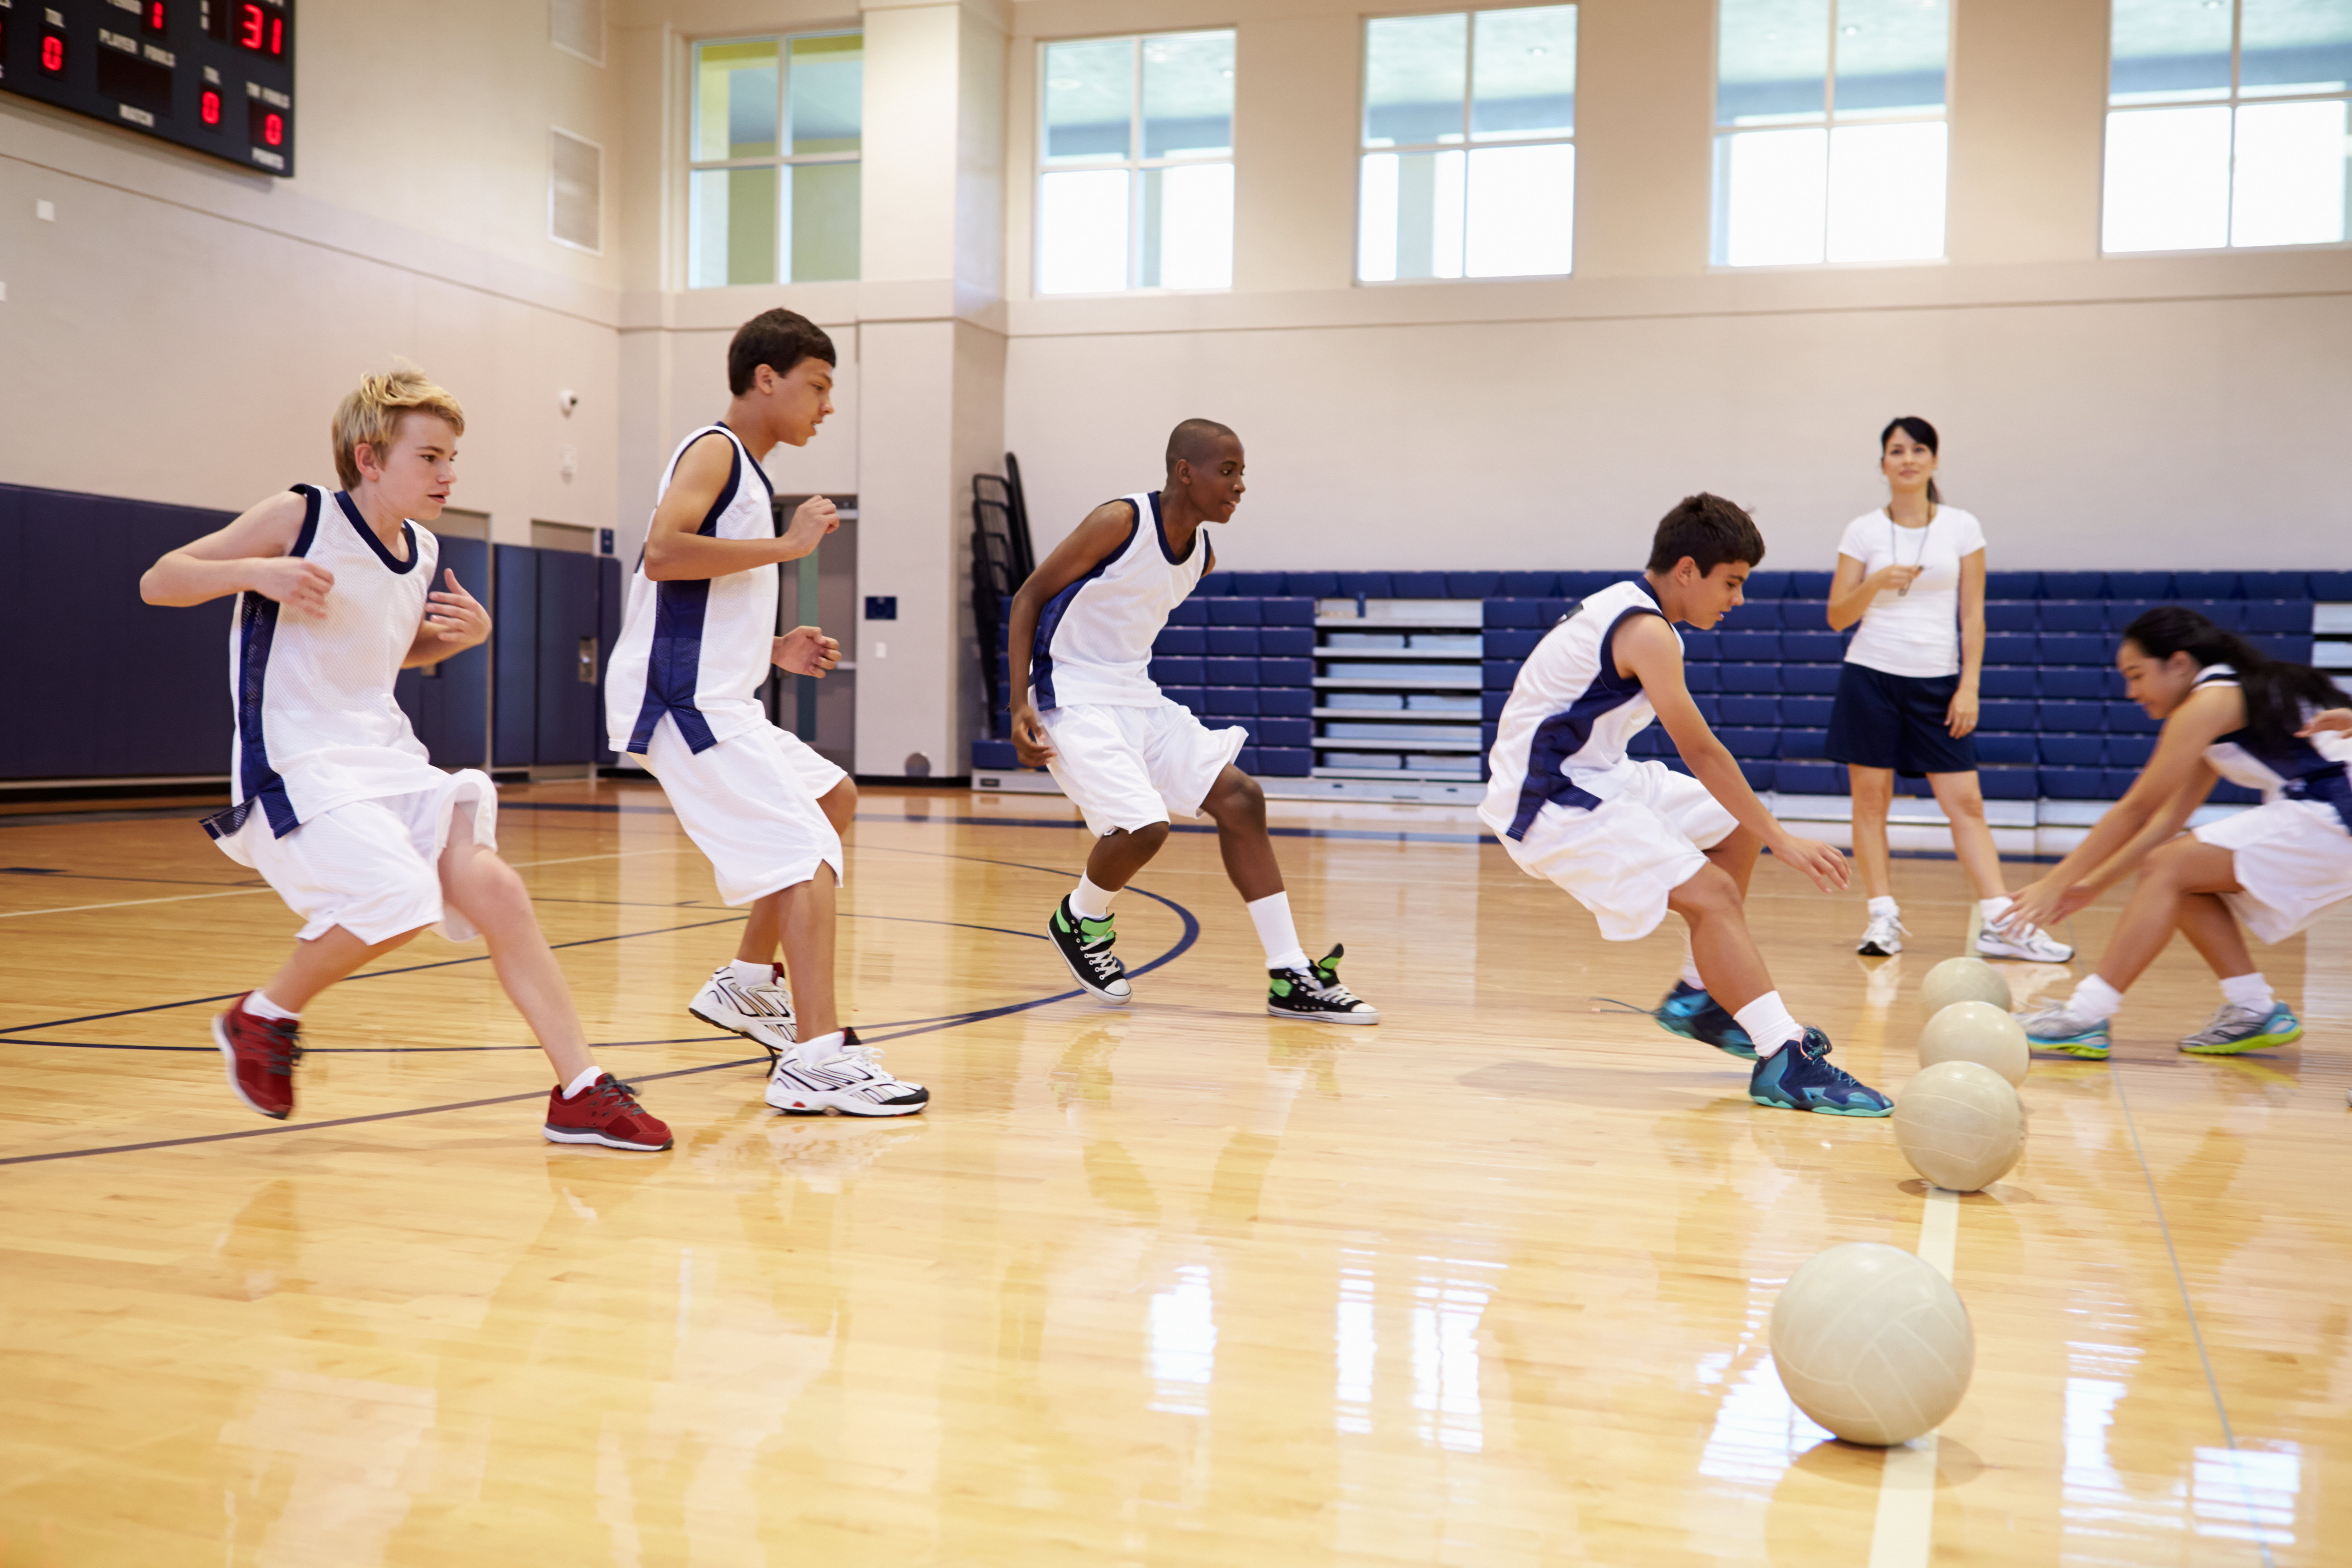 physical education in high school essays Importance of physical education in schools essay in school, the physical education program introduces these sport importance of physical education in.